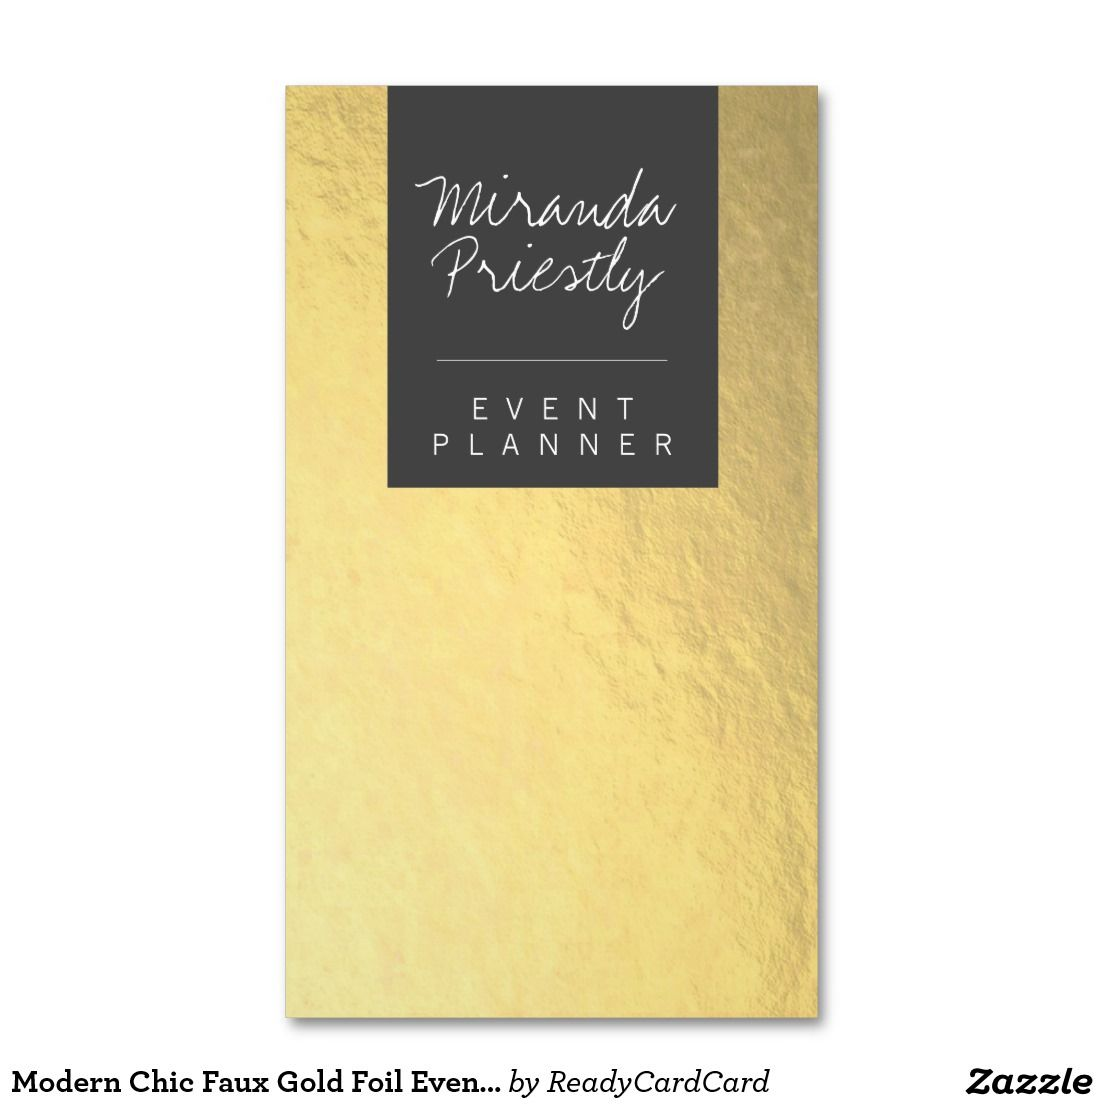 Modern Chic Faux Gold Foil Event / Wedding Planner Business Card ...